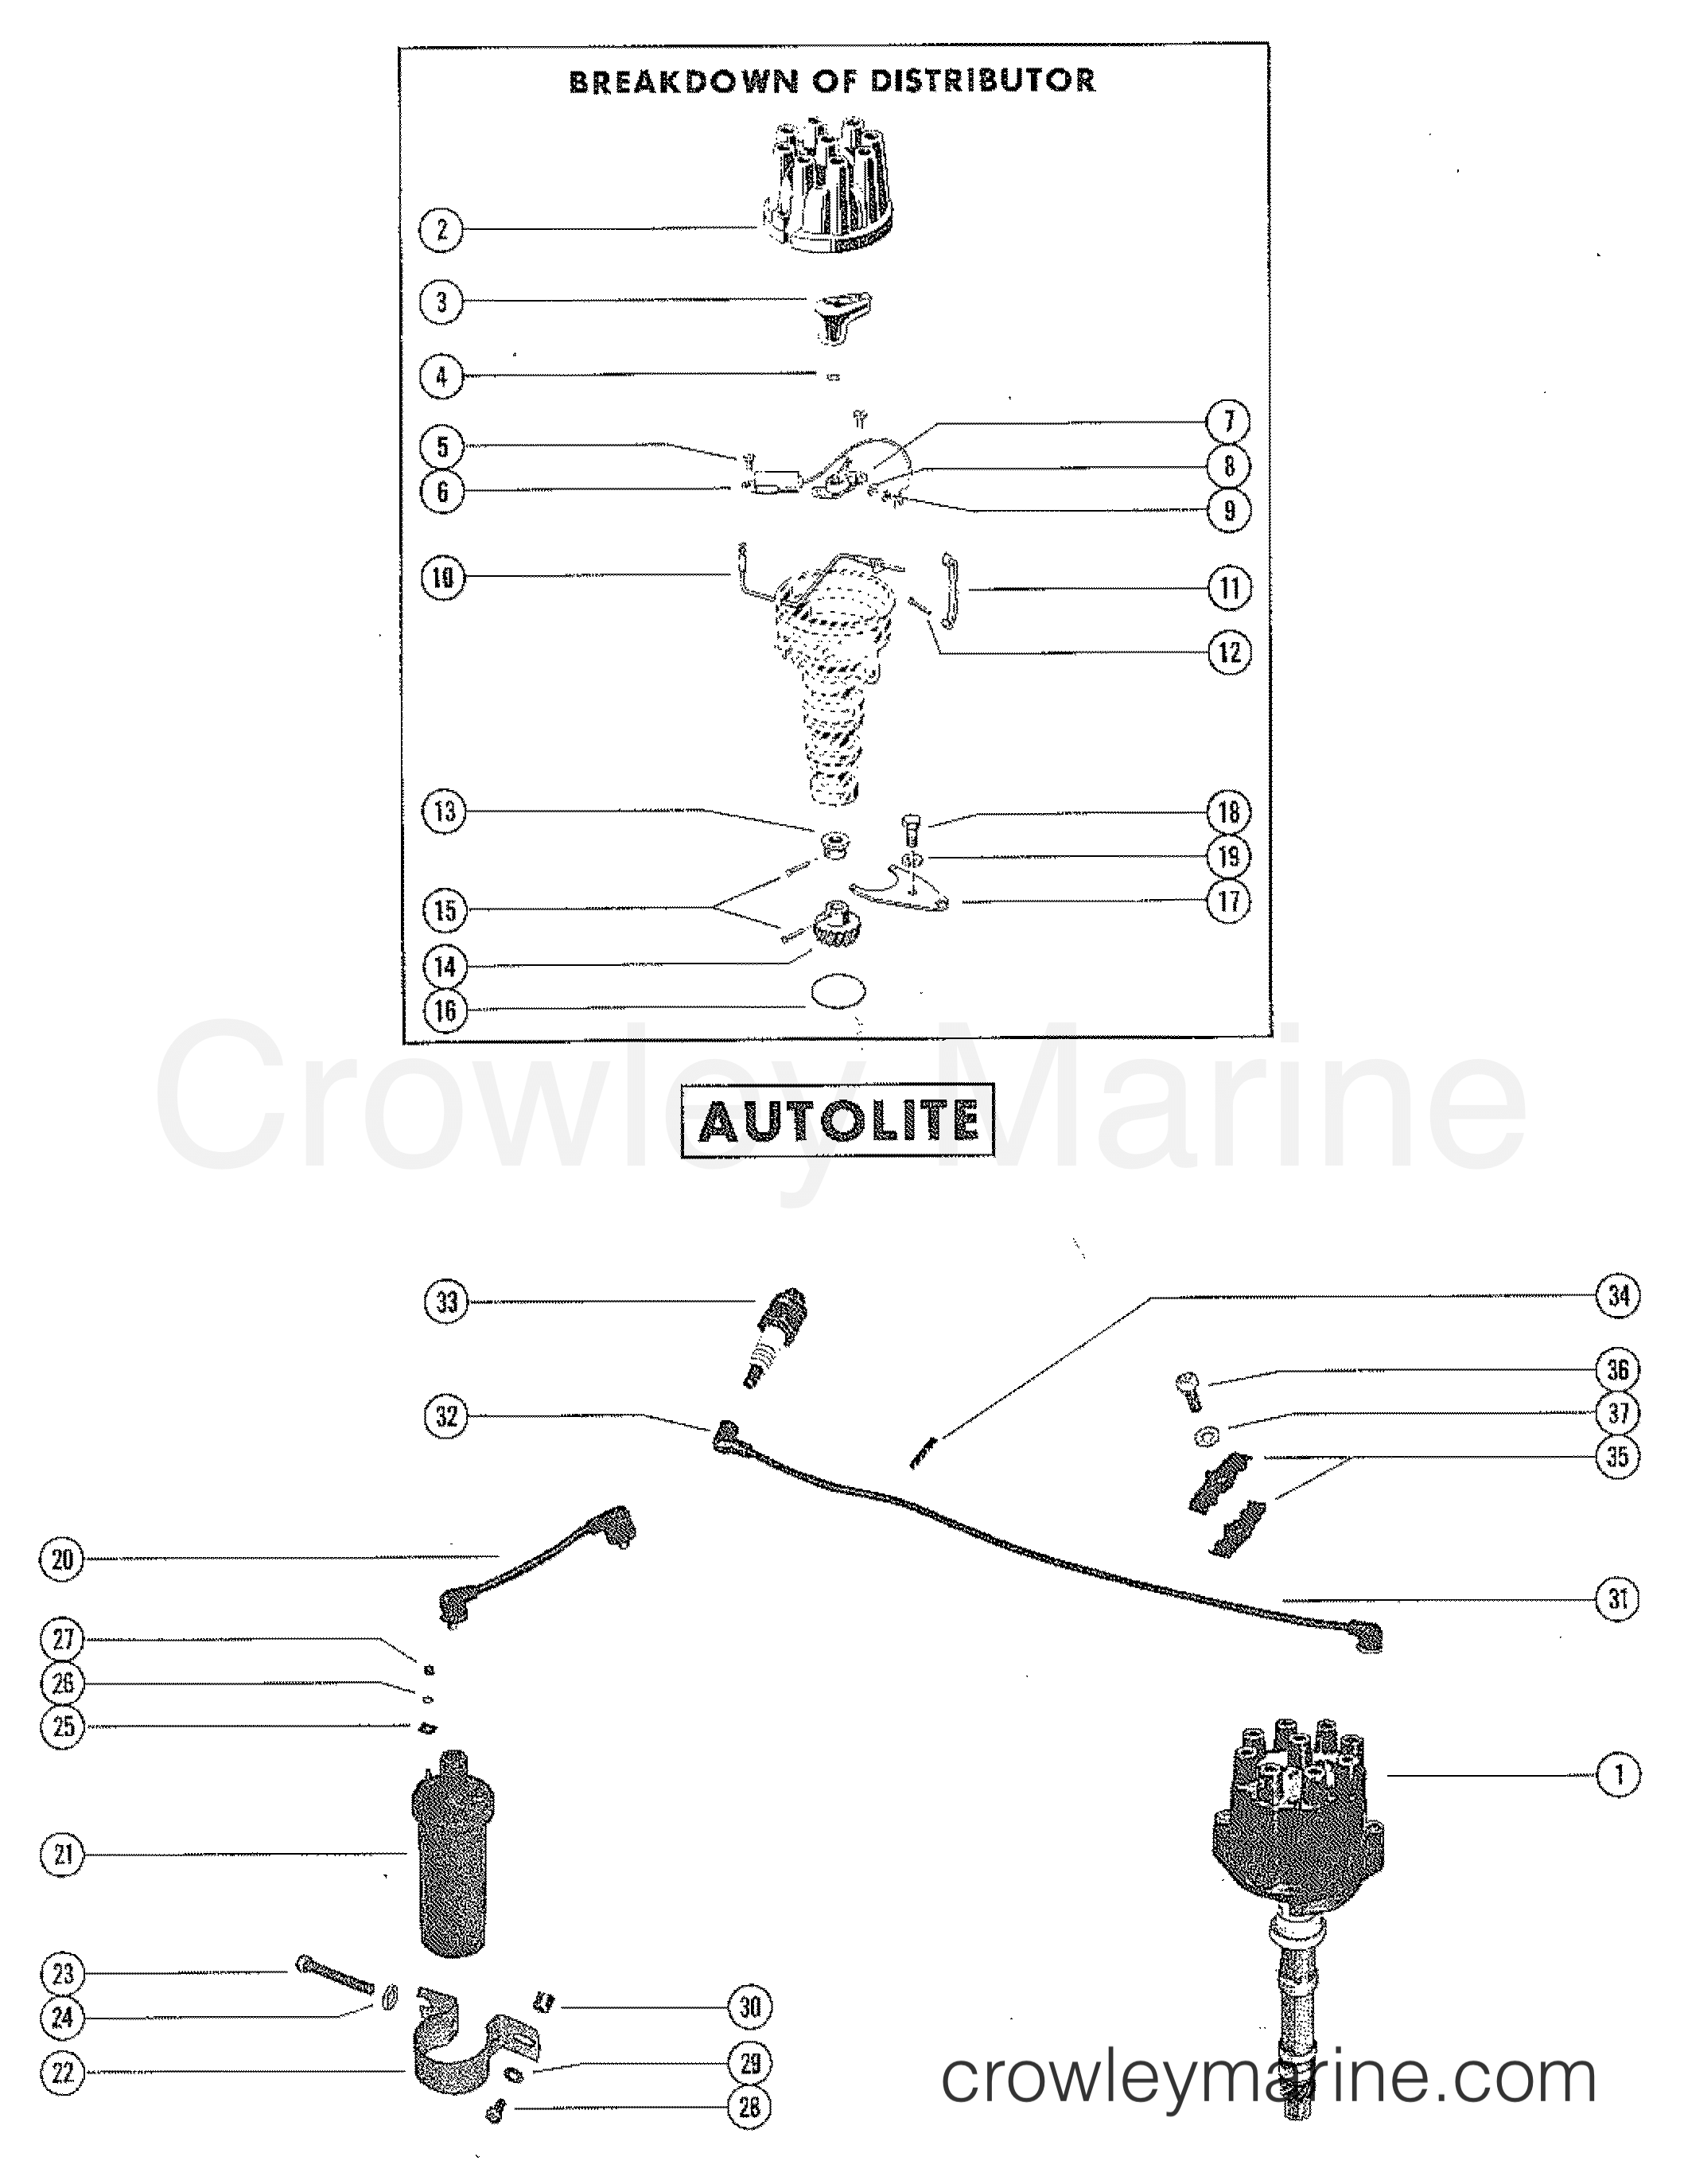 Distributor Assembly Complete Autolite Serial Range Mercruiser 302 Ford Marine Wiring Diagrams 225 4 Bbl V 8 1973